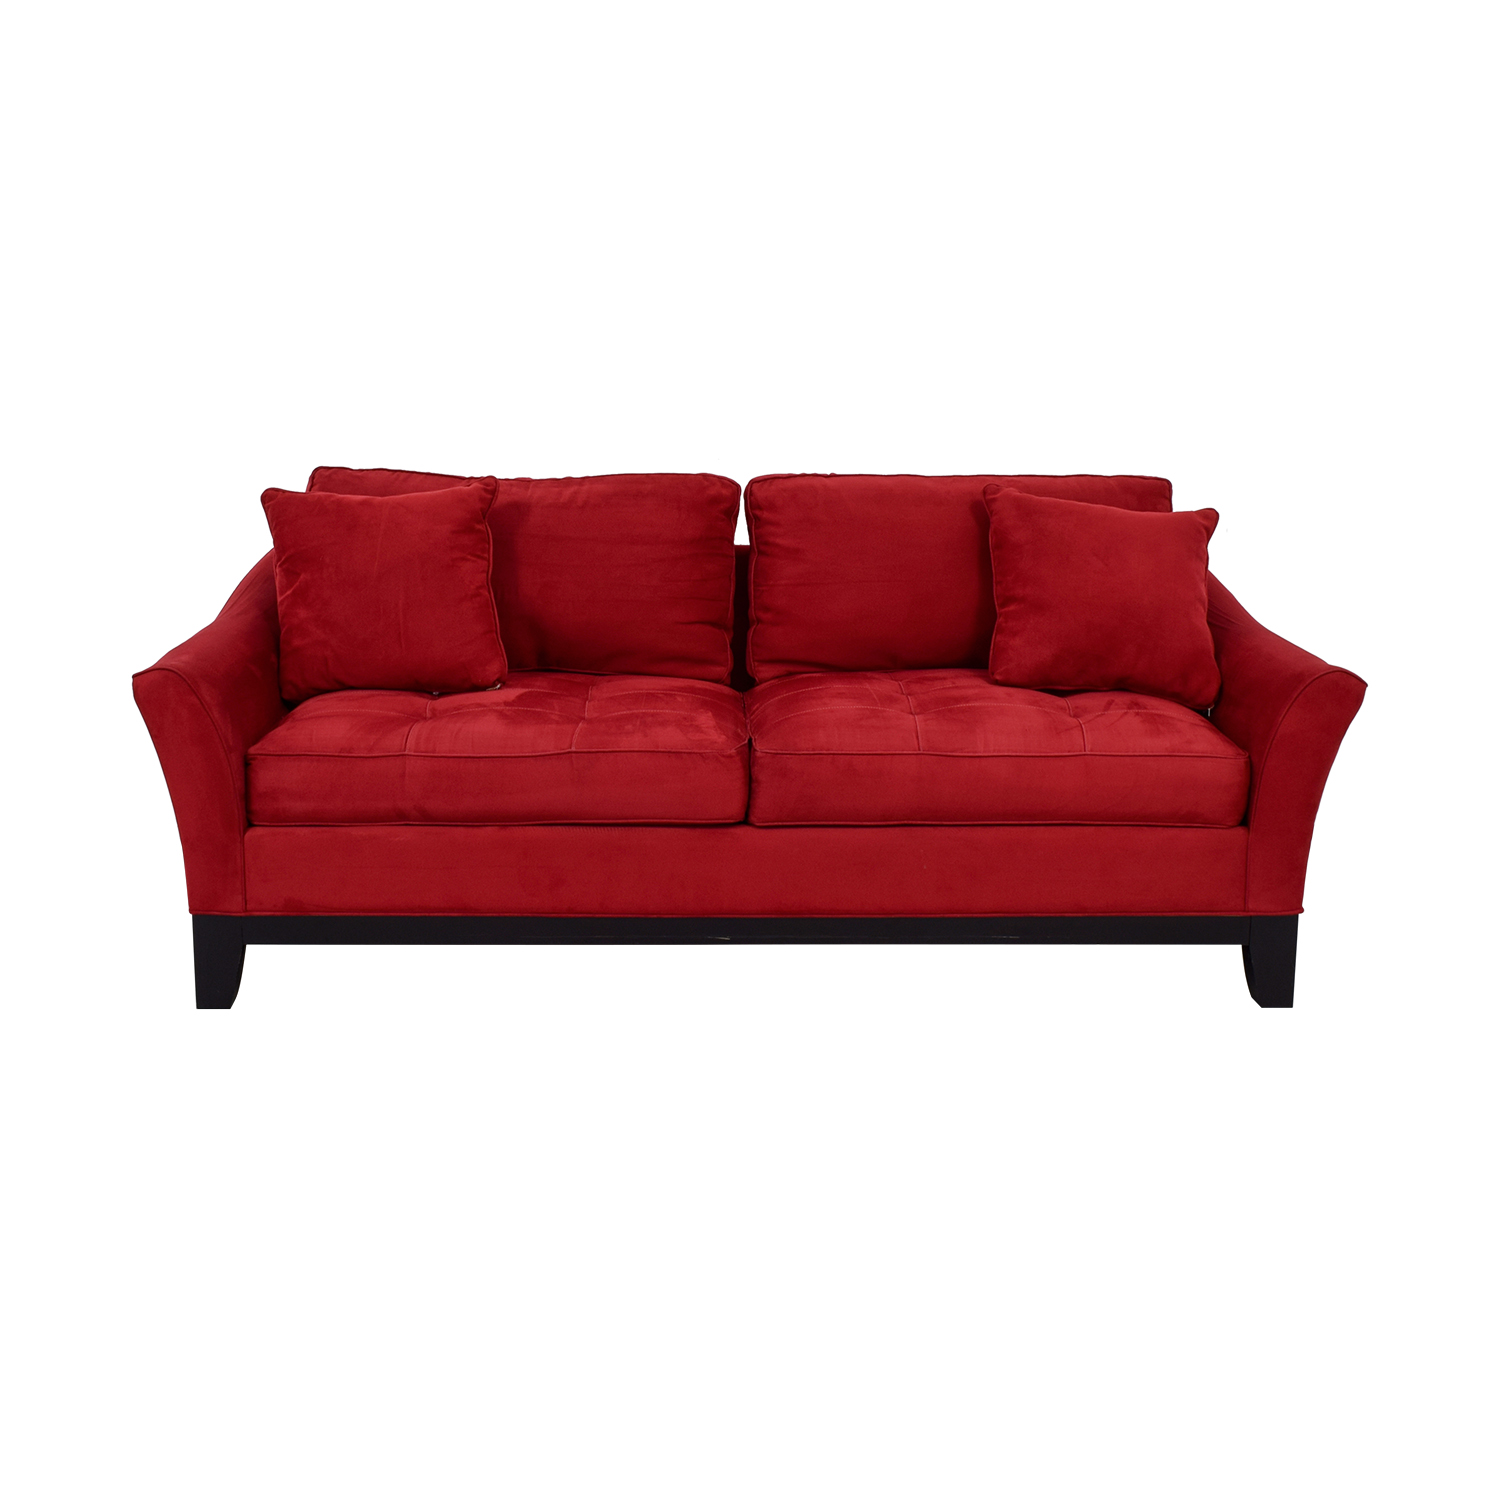 shop Raymour & Flanigan Rory Red Thufted Microfiber Two-Cushion Sofa Raymour & Flanigan Classic Sofas